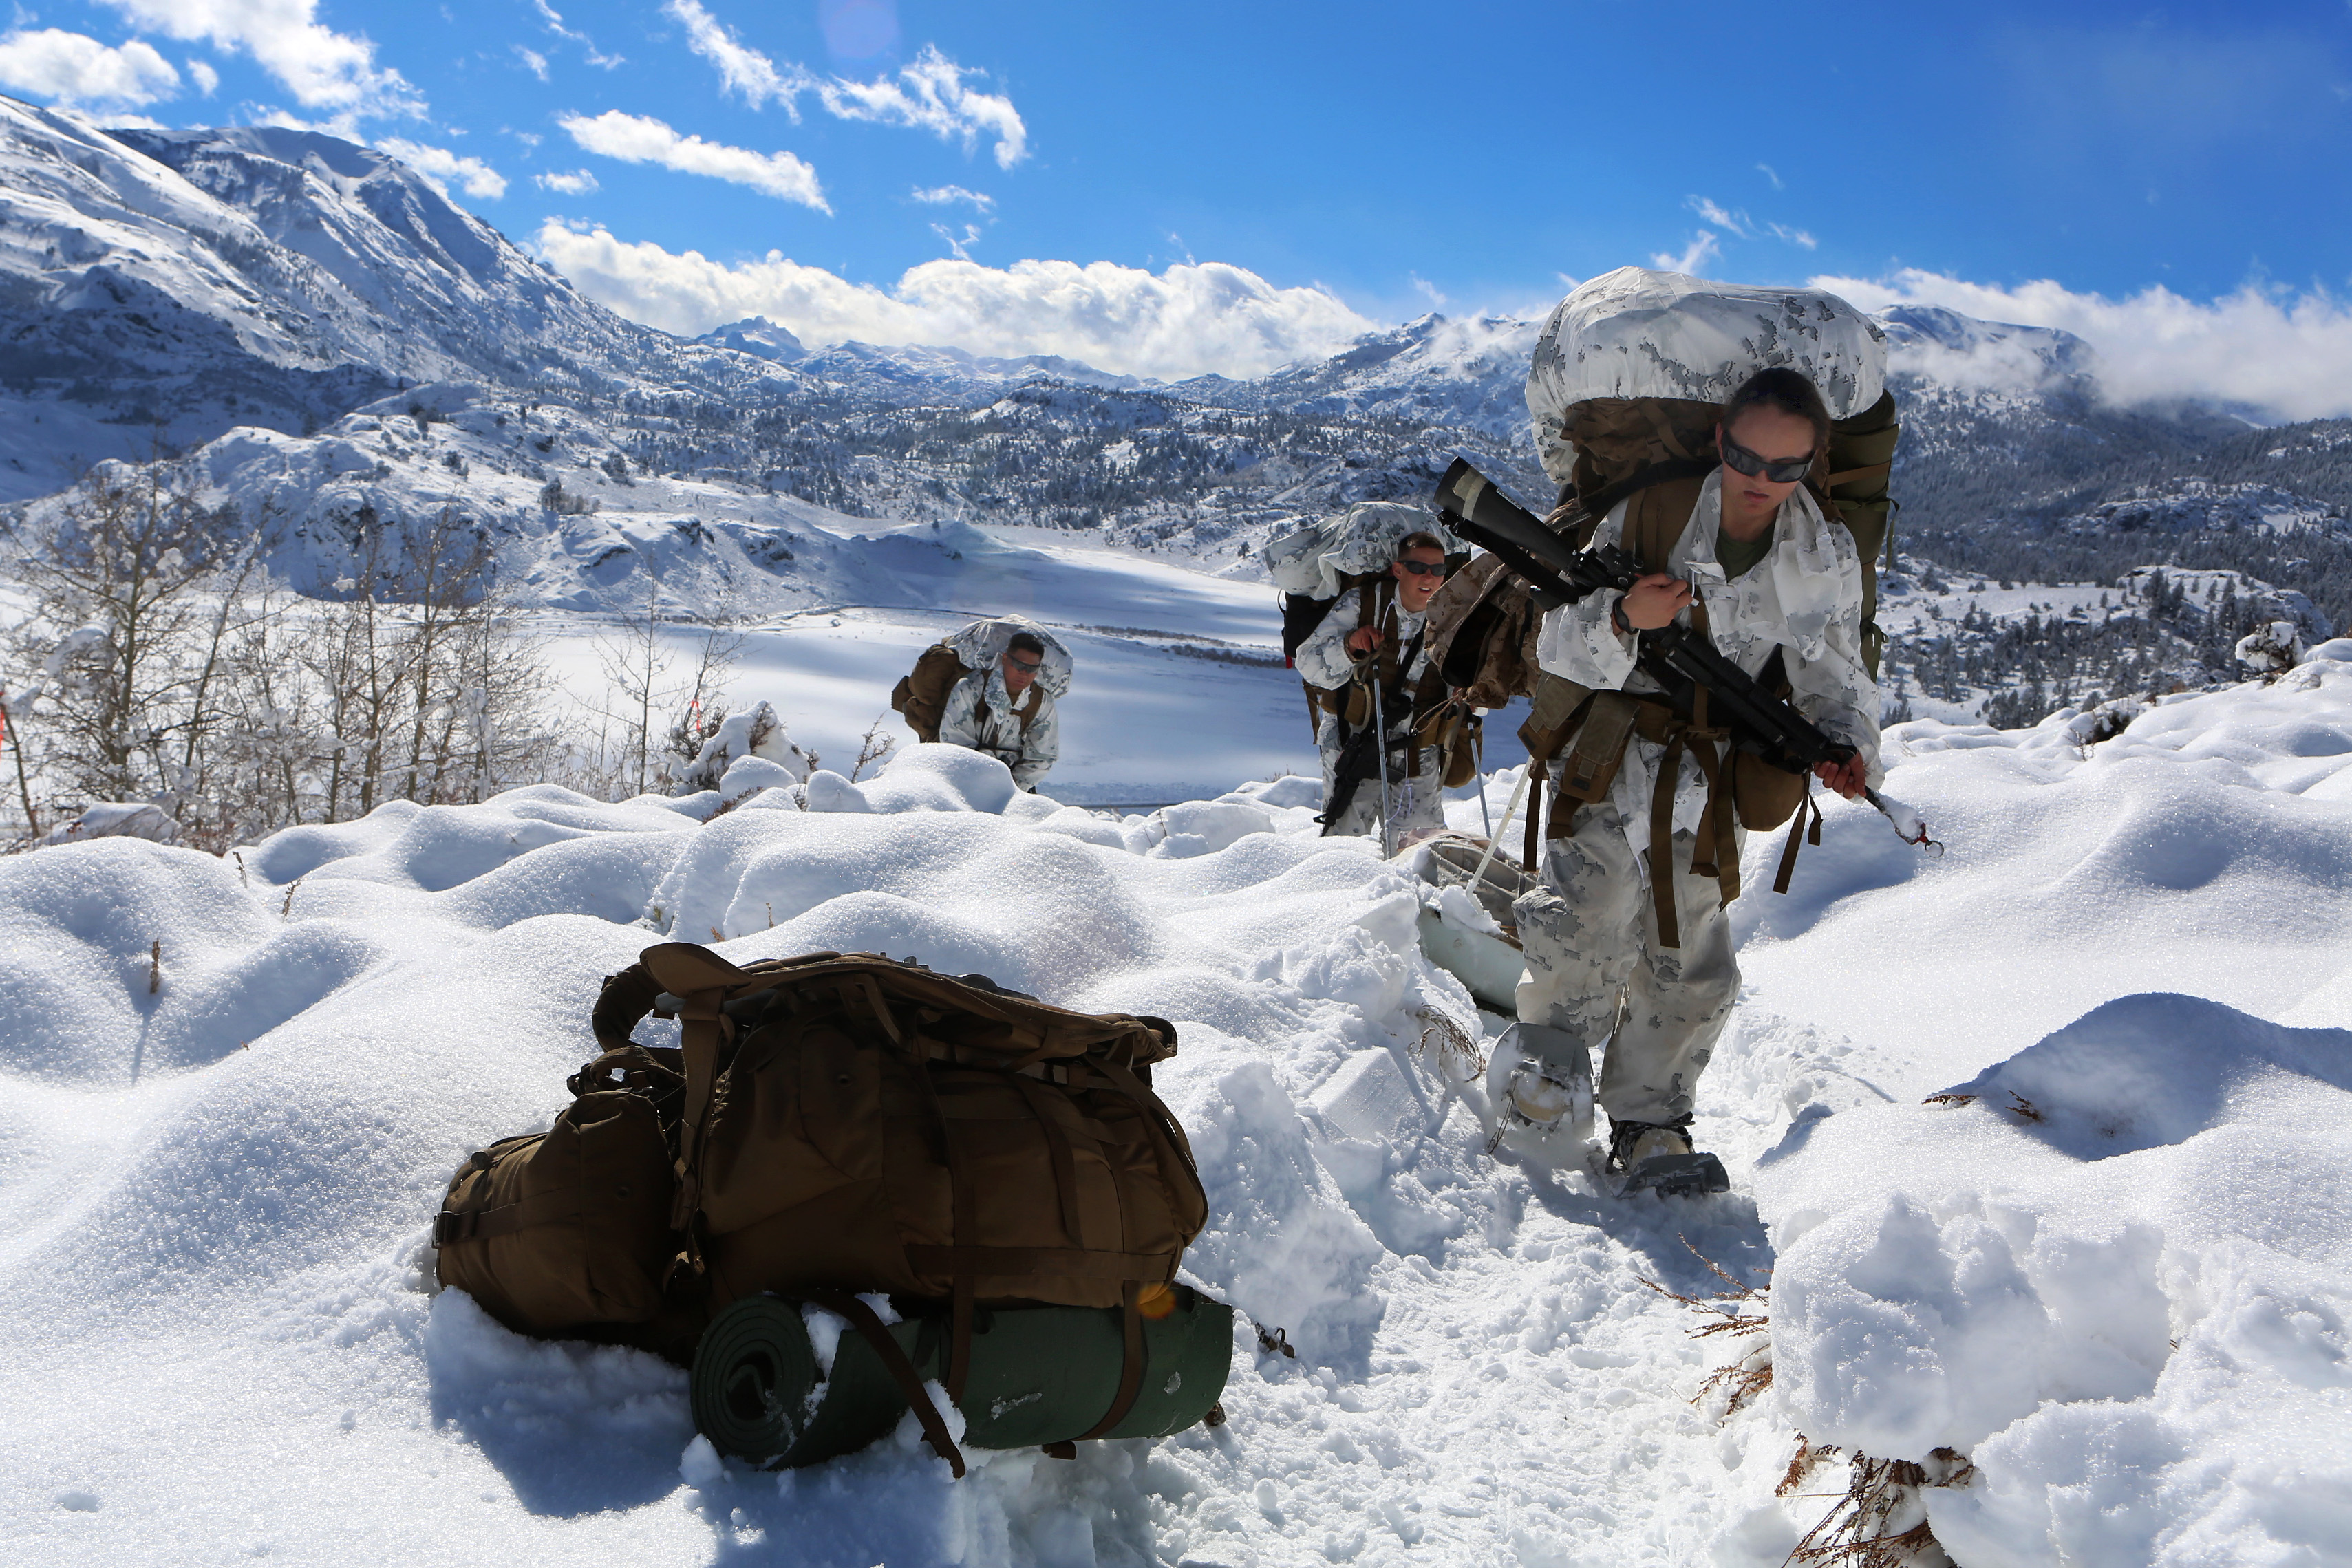 Marine Corps Lance Cpl. Eleanor H. Roper, front, pulls a weather infantry kit up a slope during a field exercise on Marine Corps Mountain Warfare Training Center in Bridgeport, Calif., Jan. 31, 2014.